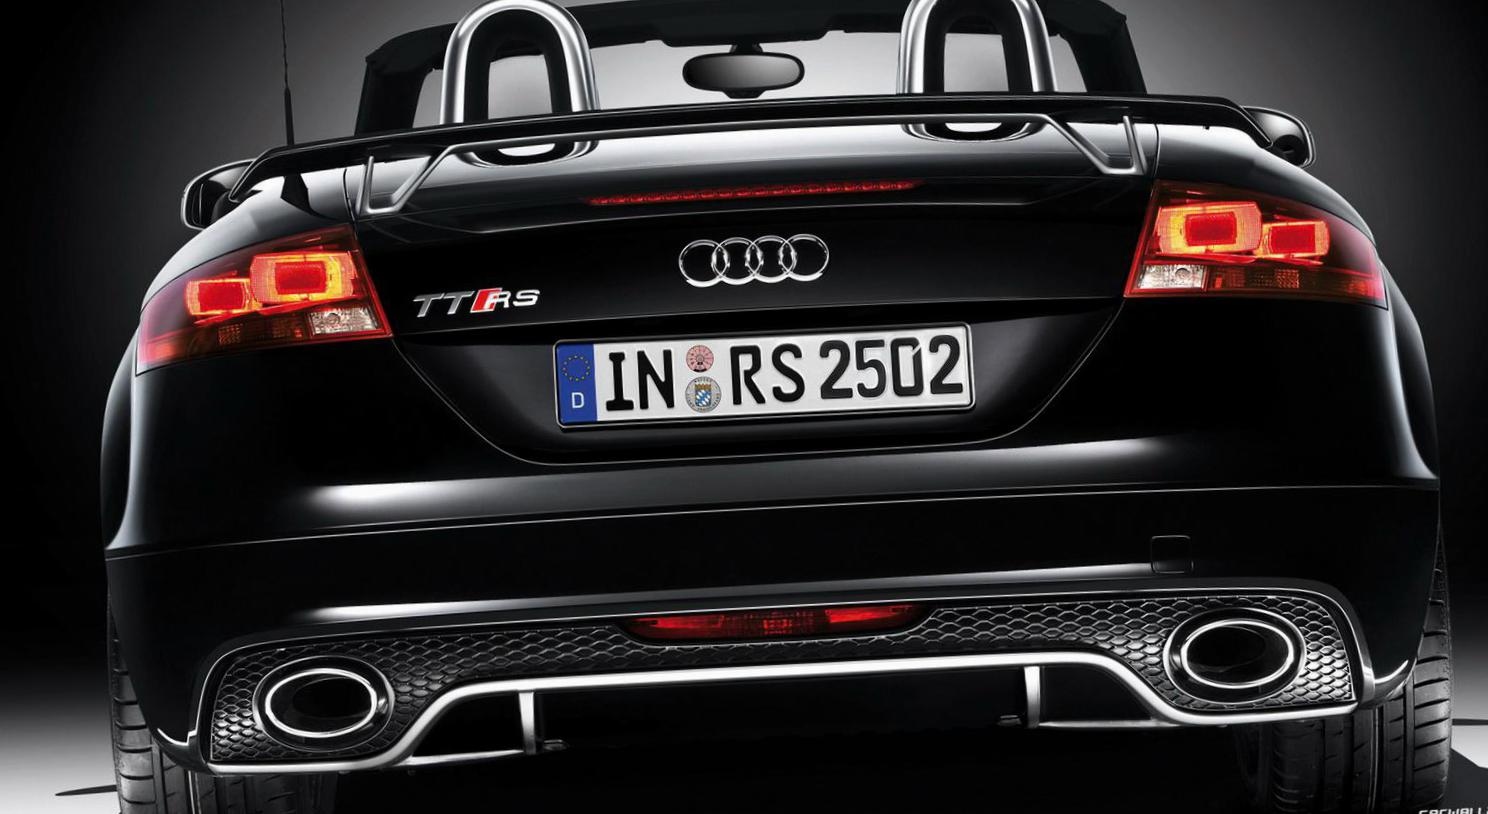 Audi TT RS Roadster Specifications 2013